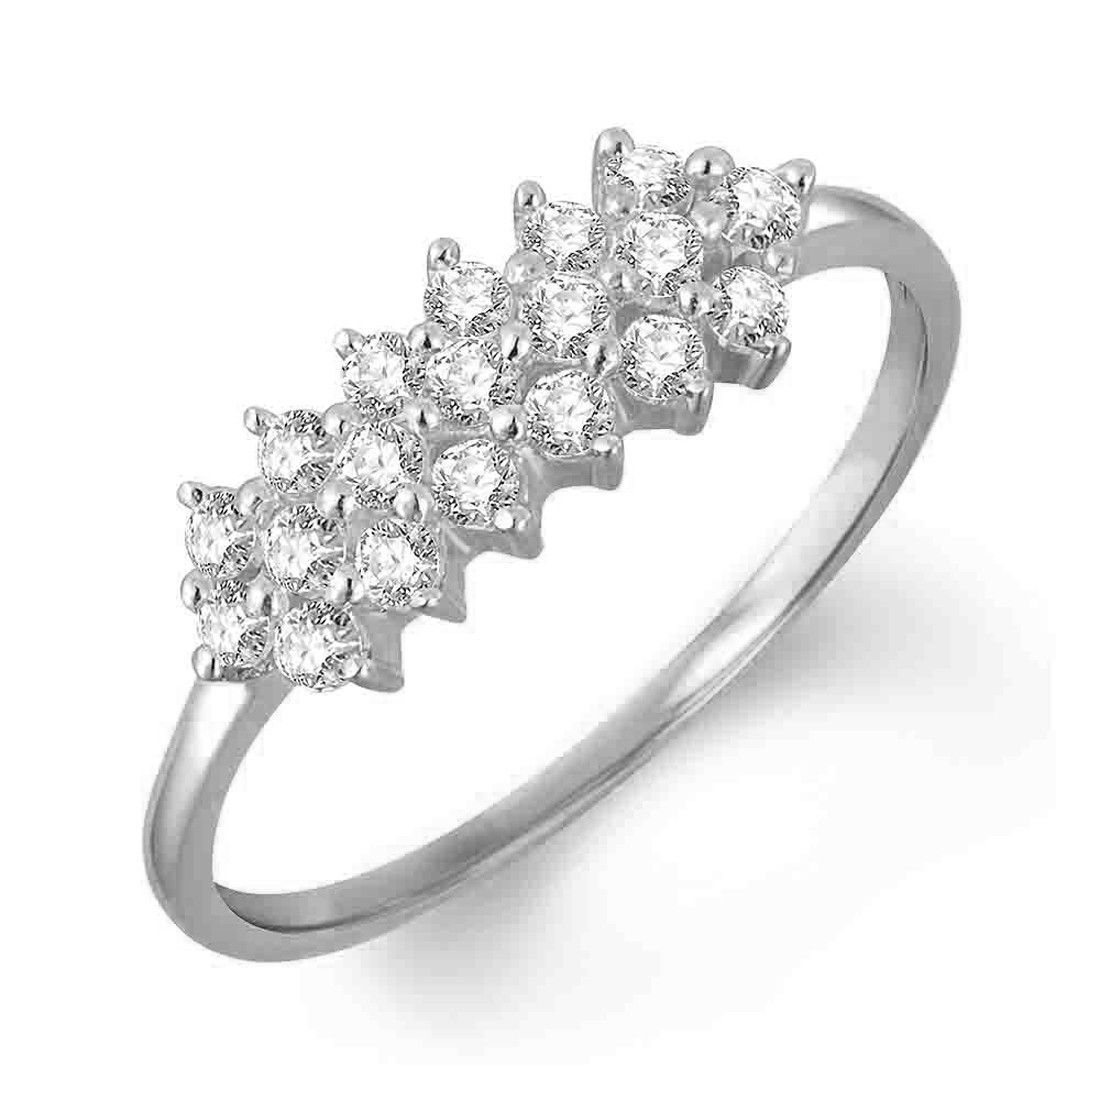 Primary image for 14k White Gold Over 925 Silver Diamond Cluster Engagement Ring Women Jewelry